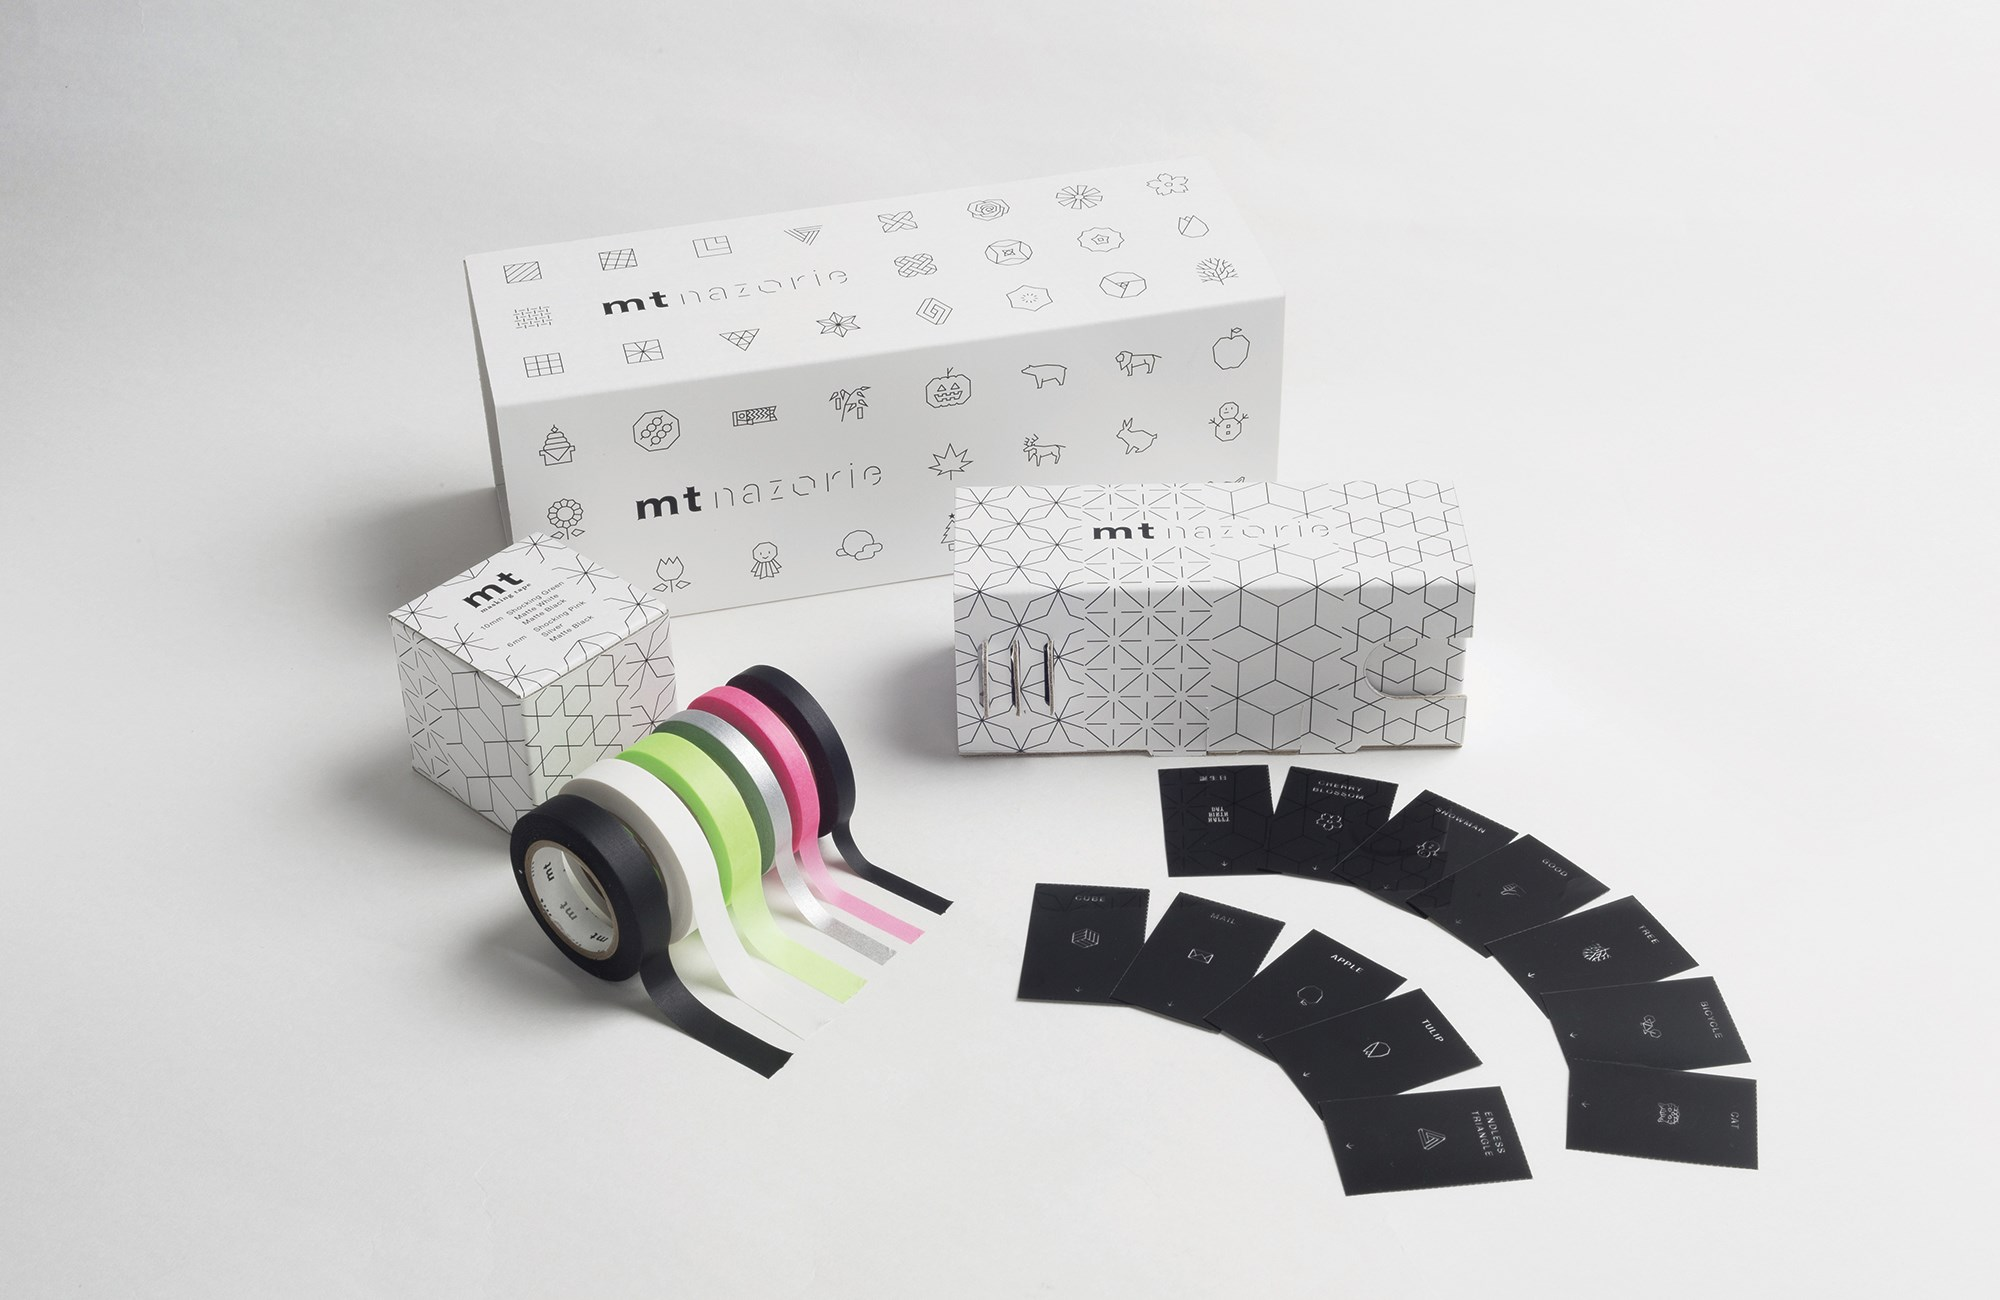 mt-washi-masking-tape-mt-nazorie-git-set-MTNZ002-1.jpg